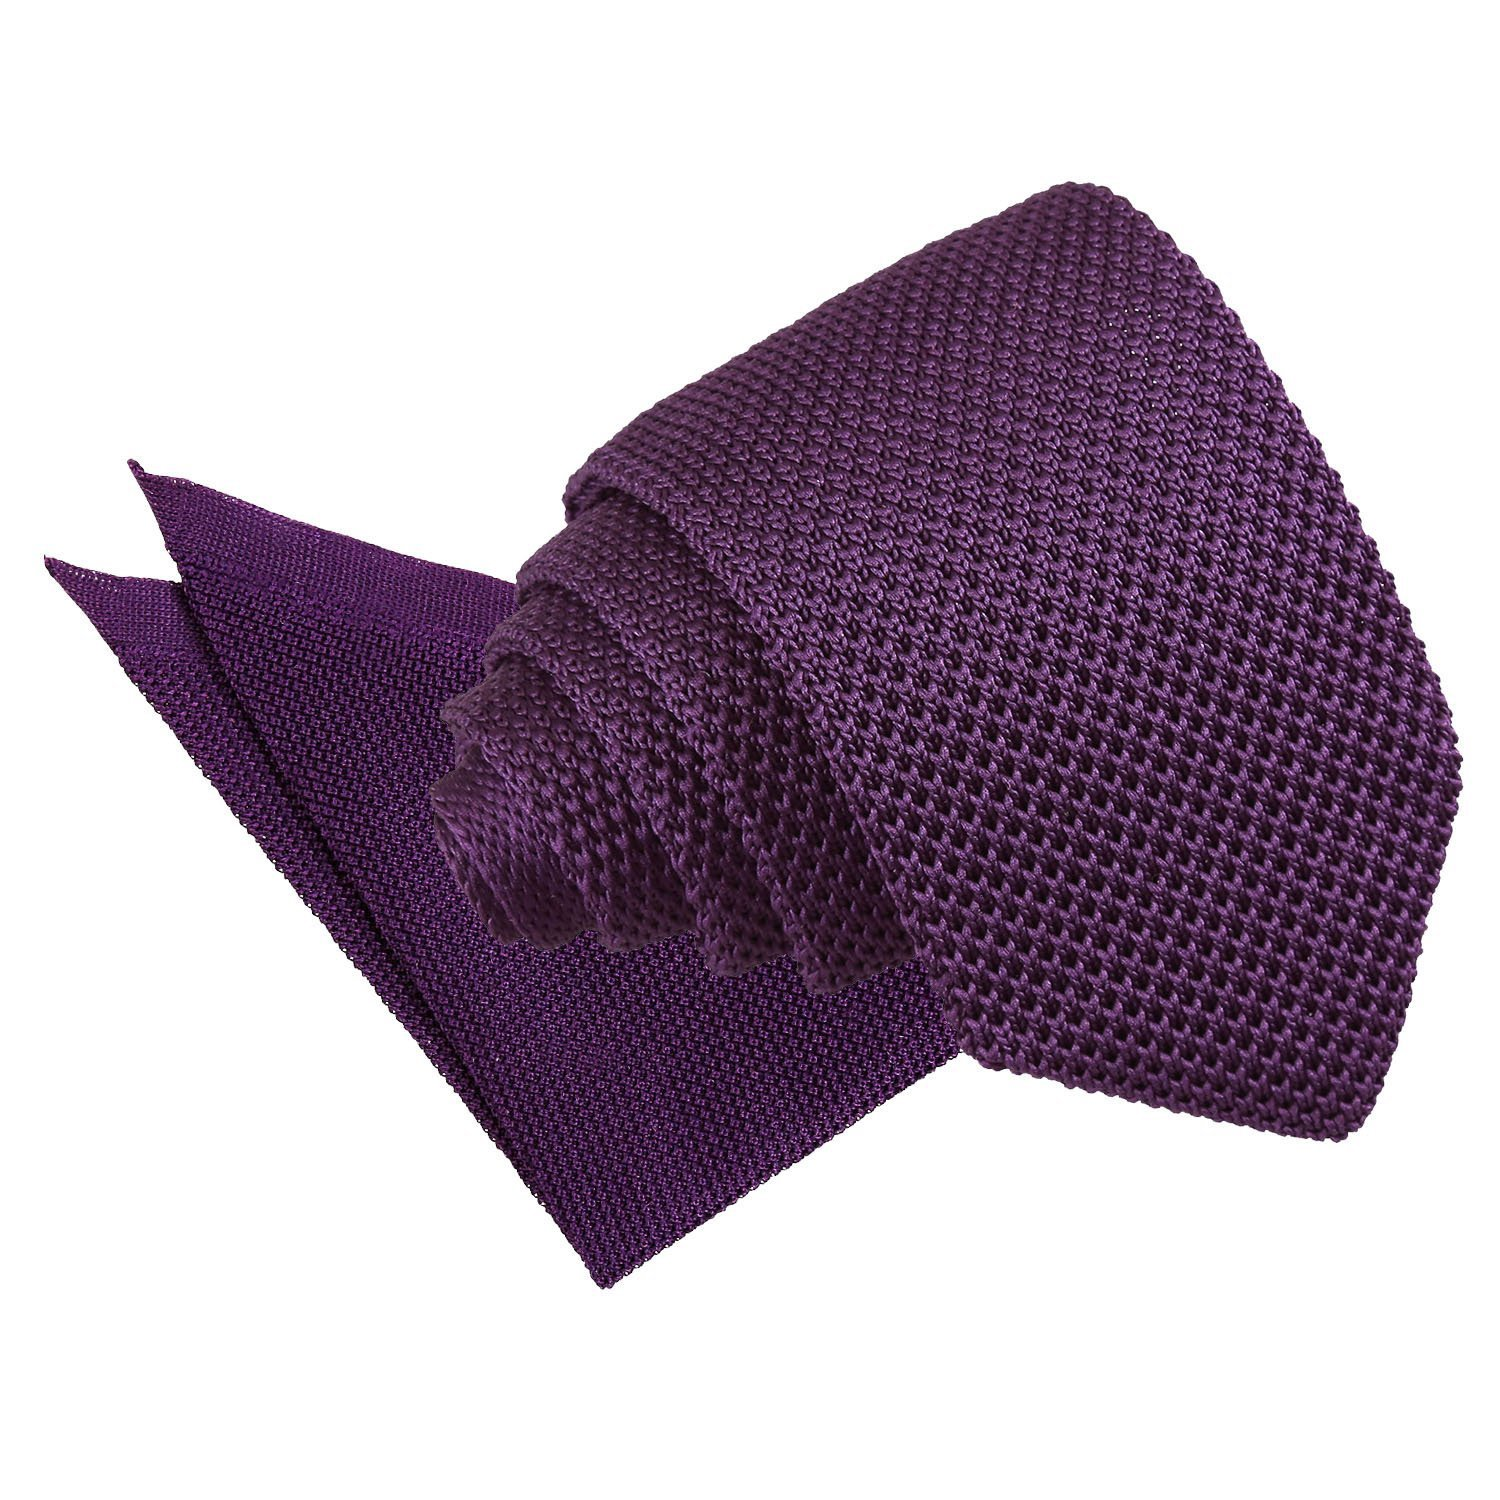 30dd80828227 Tangerine Knitted Slim Tie & Pocket Square Set. Cadbury Purple ...